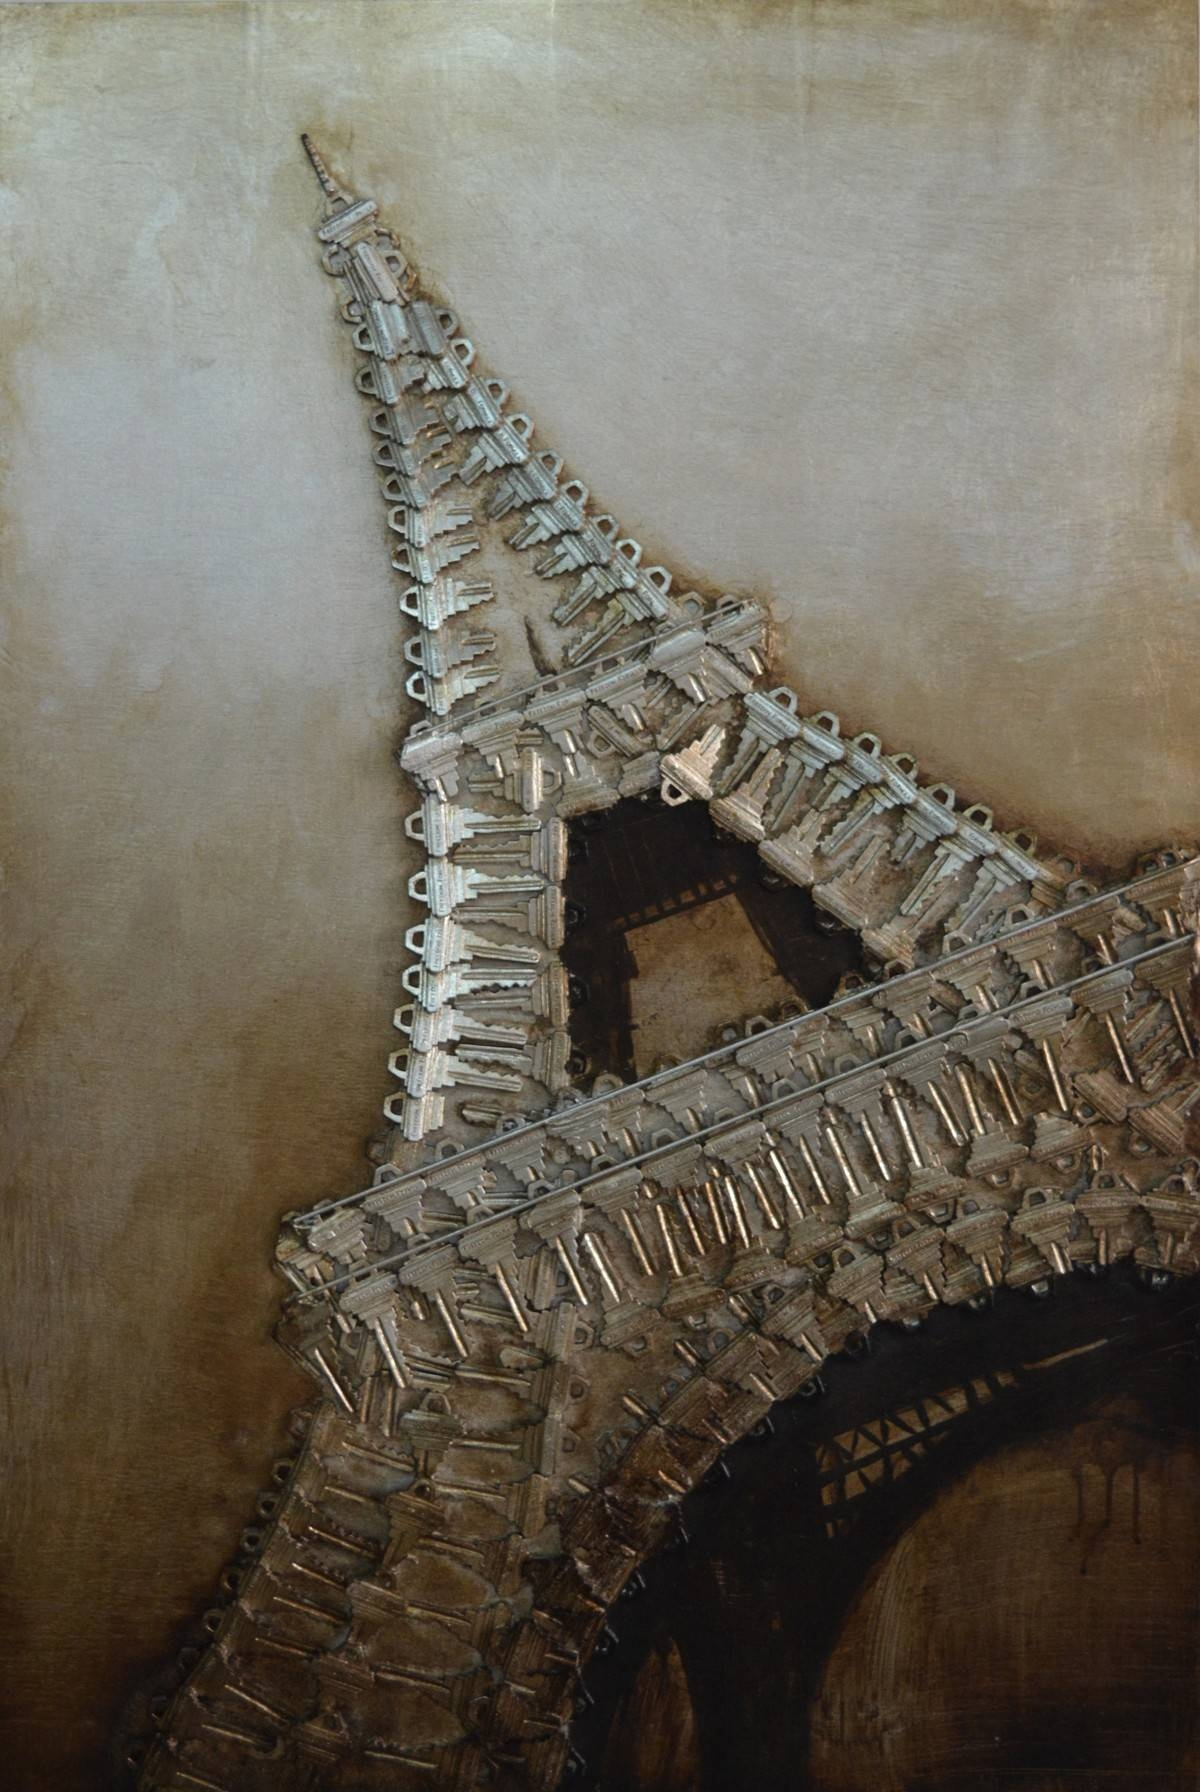 Eiffel Tower 3d Metal Wall Art – Blackbrook Interiors With 2017 Eiffel Tower Metal Wall Art (View 6 of 30)